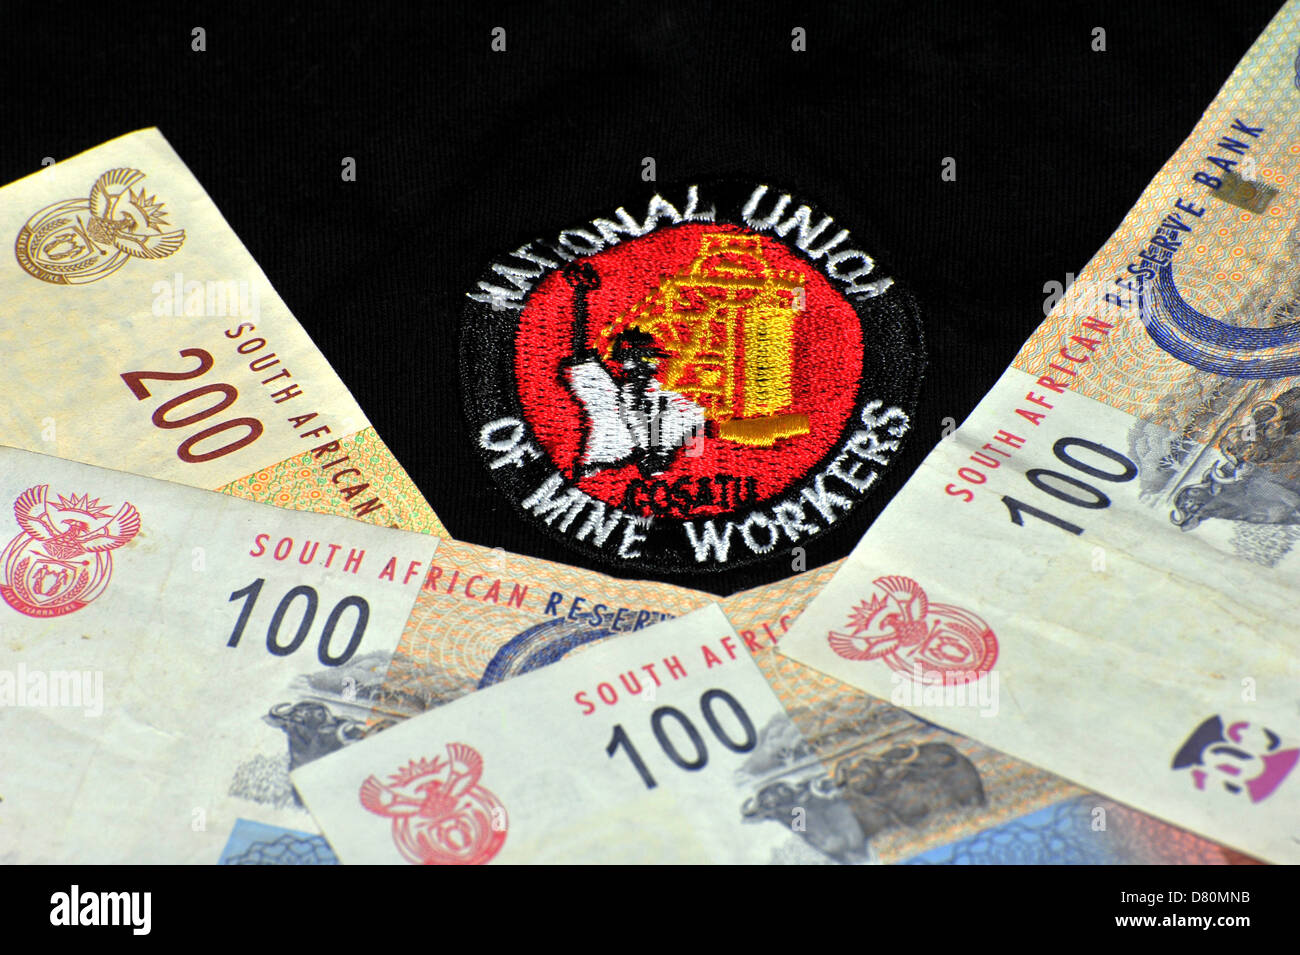 Images of the logo of the South African NUM (National Union of Miners) on textile. - Stock Image